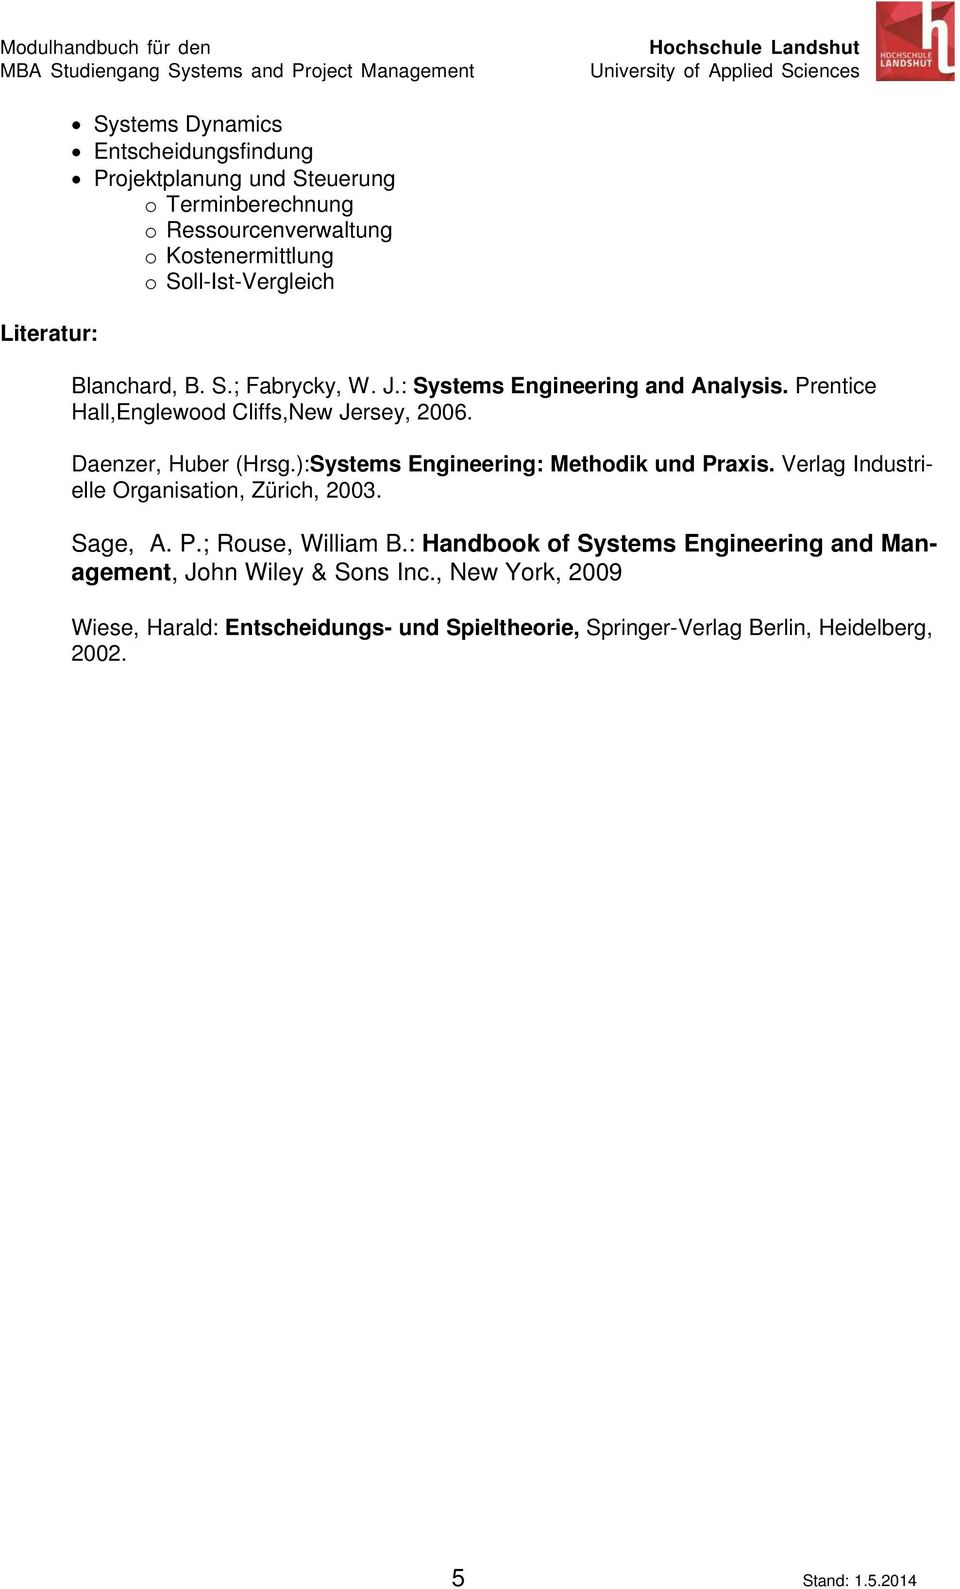 Daenzer, Huber (Hrsg.):Systems Engineering: Methodik und Praxis. Verlag Industrielle Organisation, Zürich, 2003. Sage, A. P.; Rouse, William B.